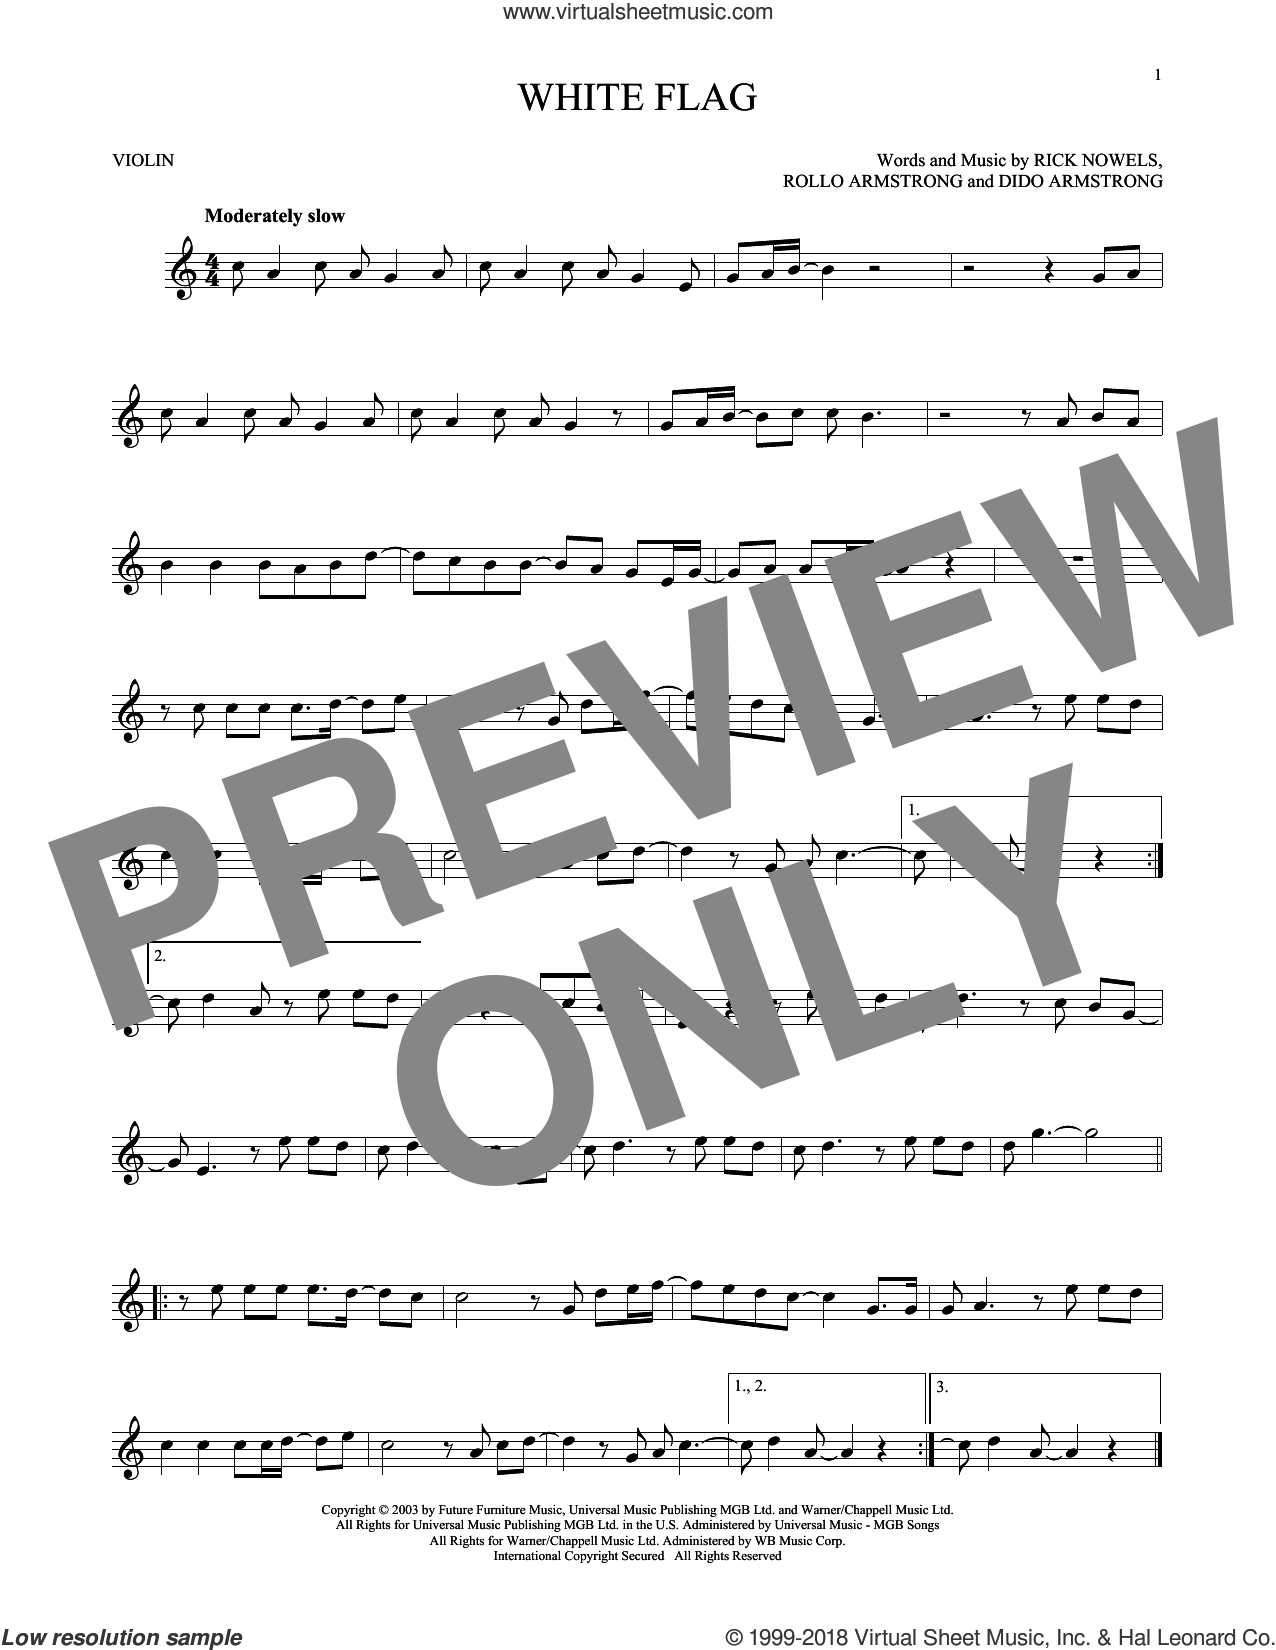 White Flag sheet music for violin solo by Rollo Armstrong